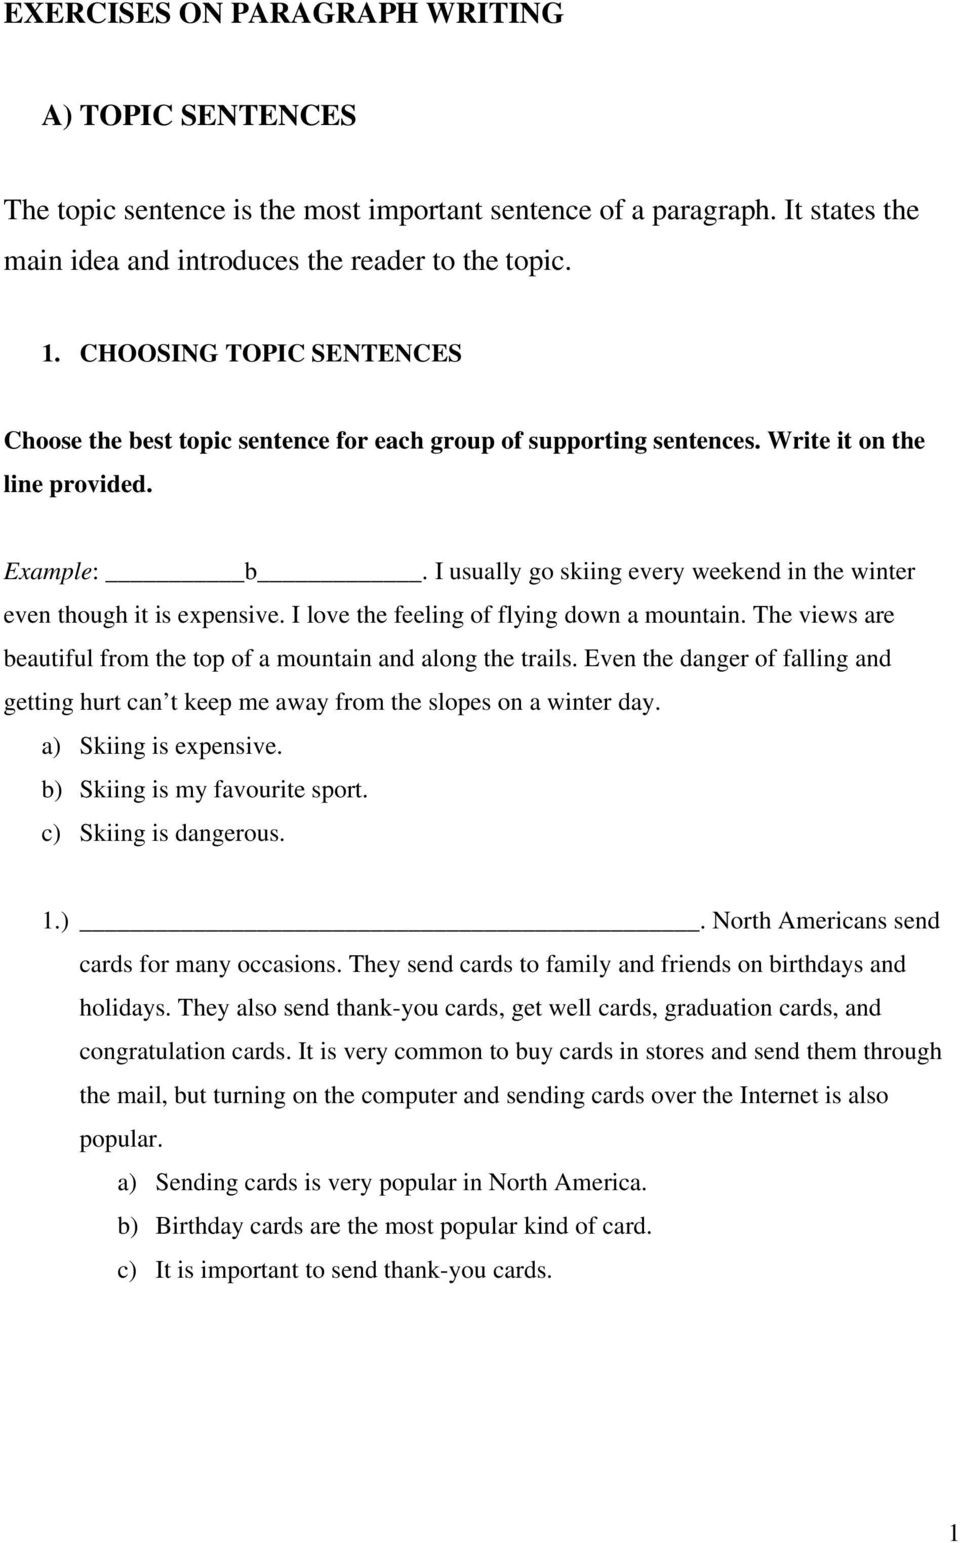 Topic Sentences Worksheets Grade 4 Choose the Best topic Sentence for Each Group Of Supporting